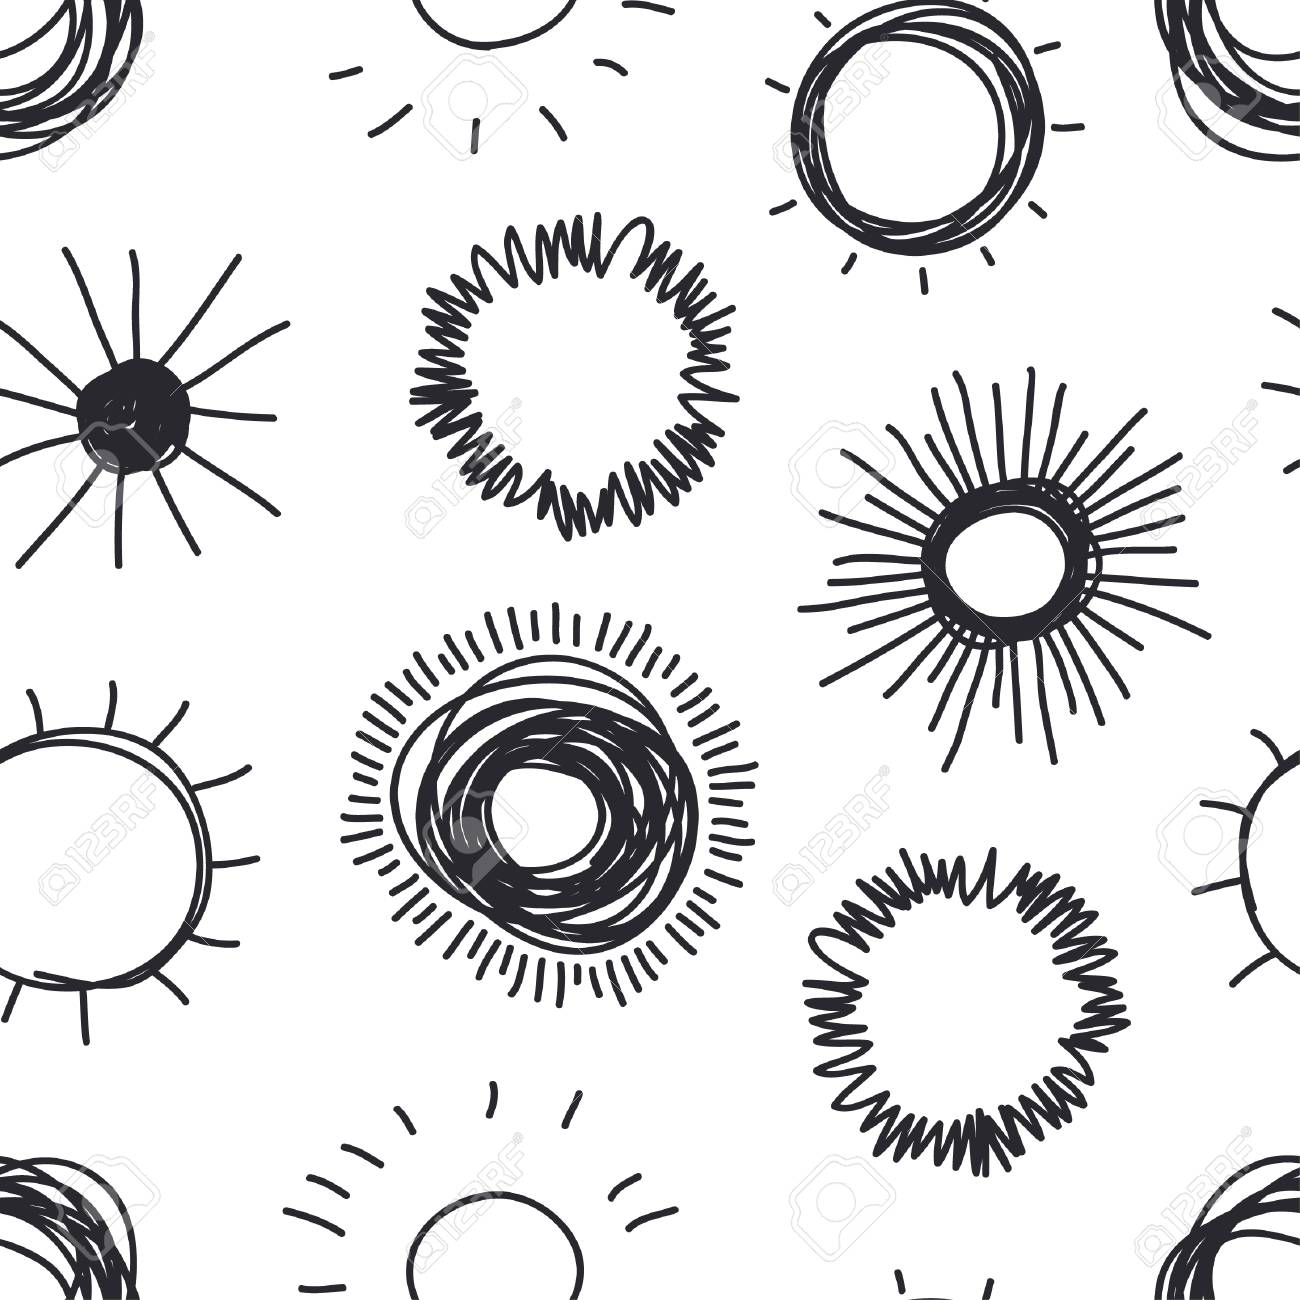 4b9a0b4e720 Photo hand drawn illustration sun doodle style seamless pattern black and  white solar system objects jpg